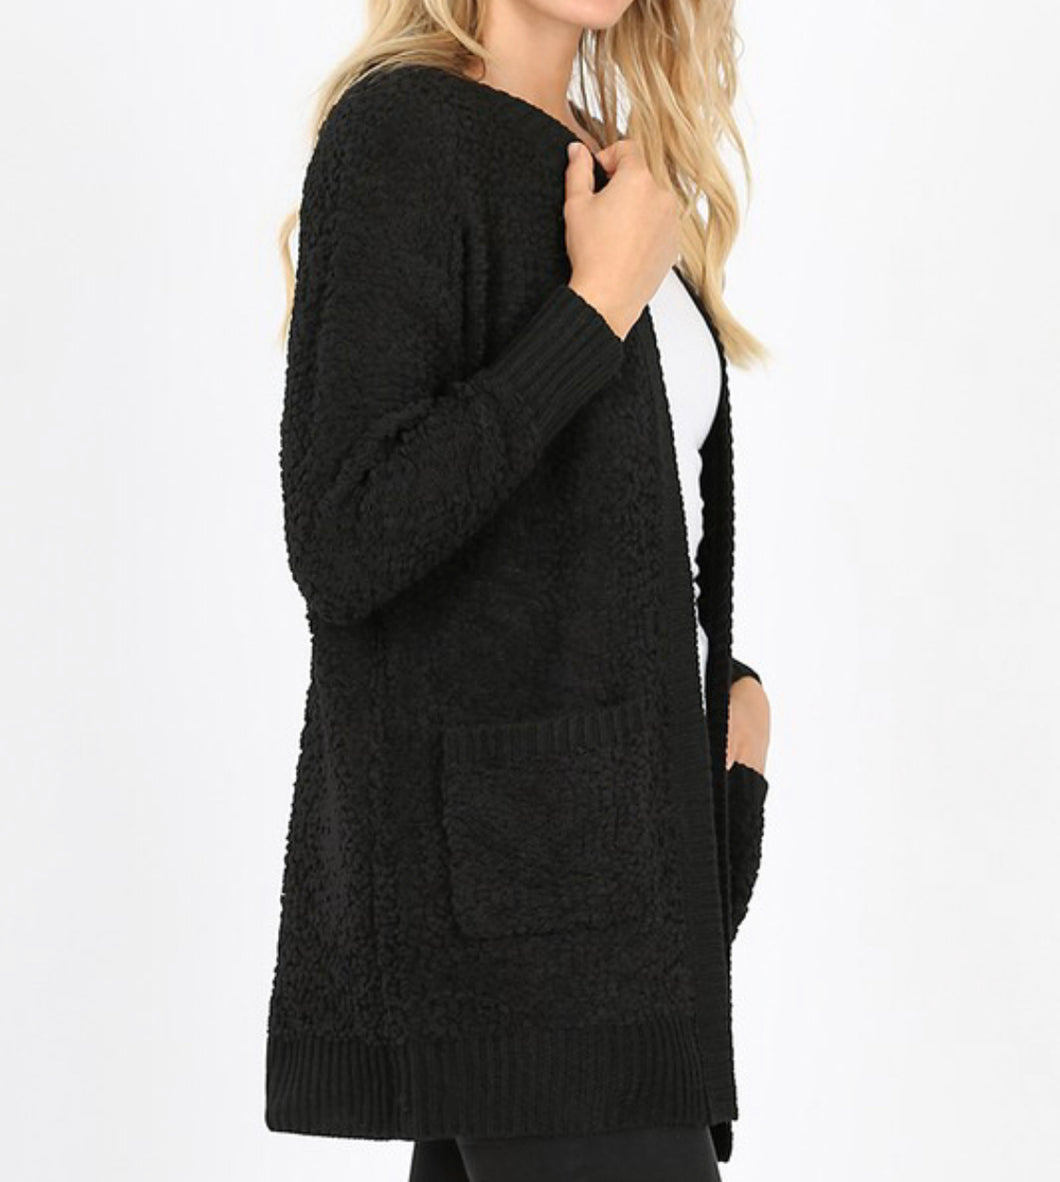 Black Popcorn Cardigan Sweater